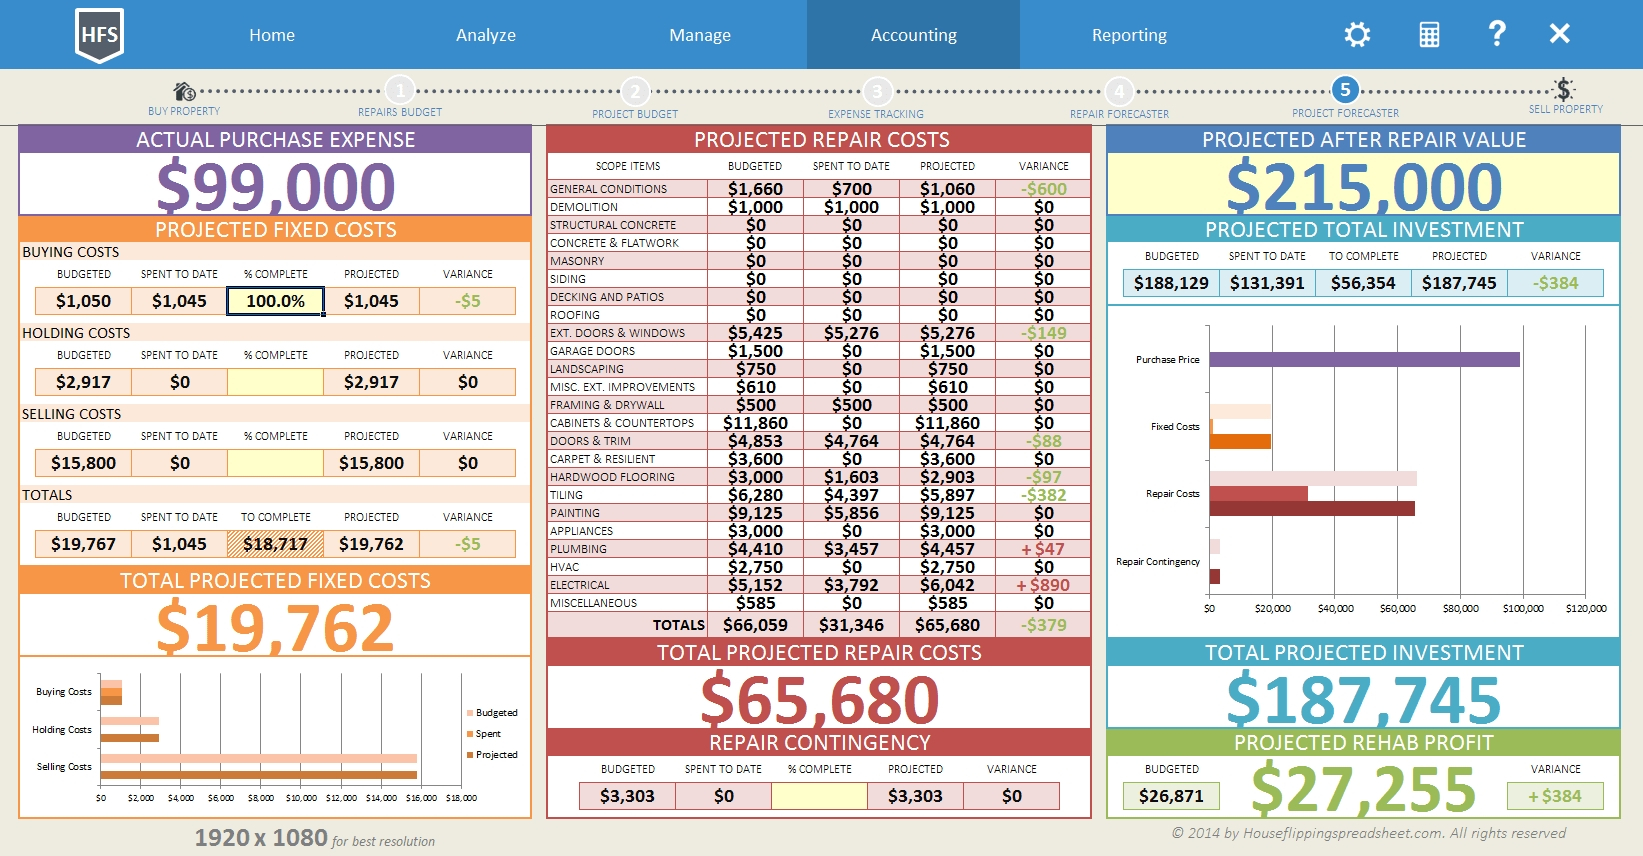 House Flipping Spreadsheet Free Download With Regard To House Flipping Spreadsheet Template Free Download Coupon  Askoverflow